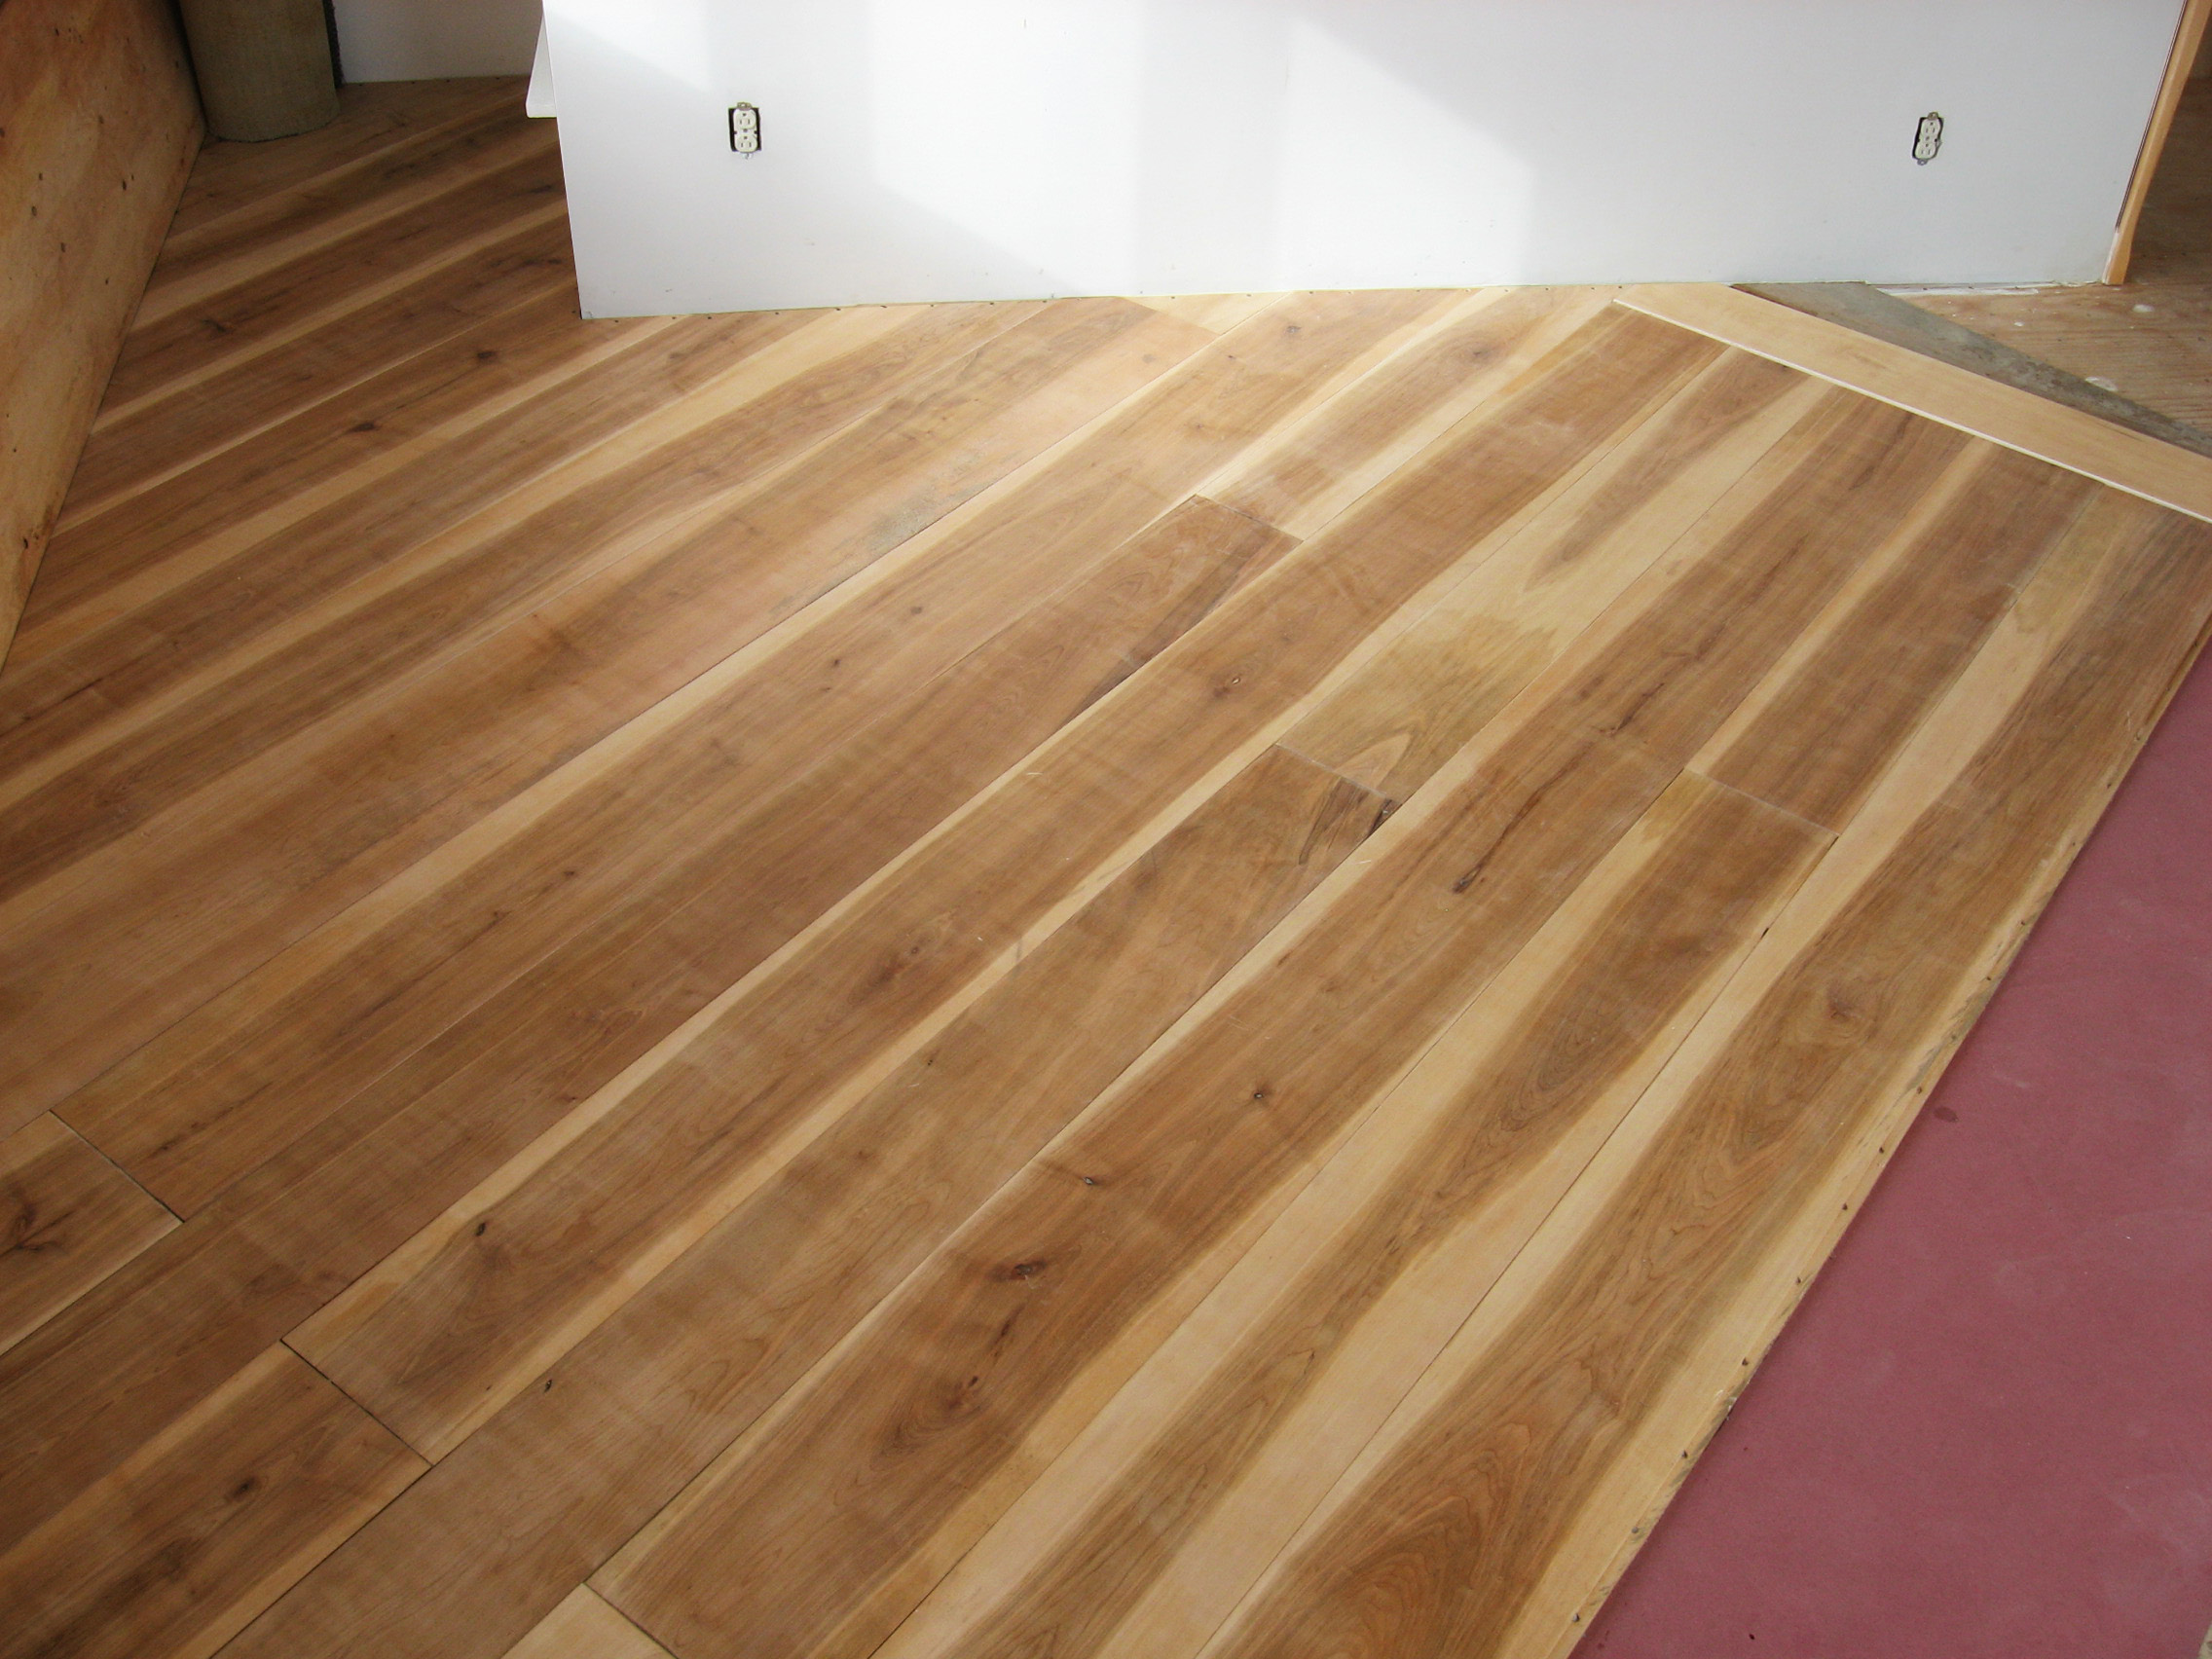 A Wide Plank Floor From Cutting Trees